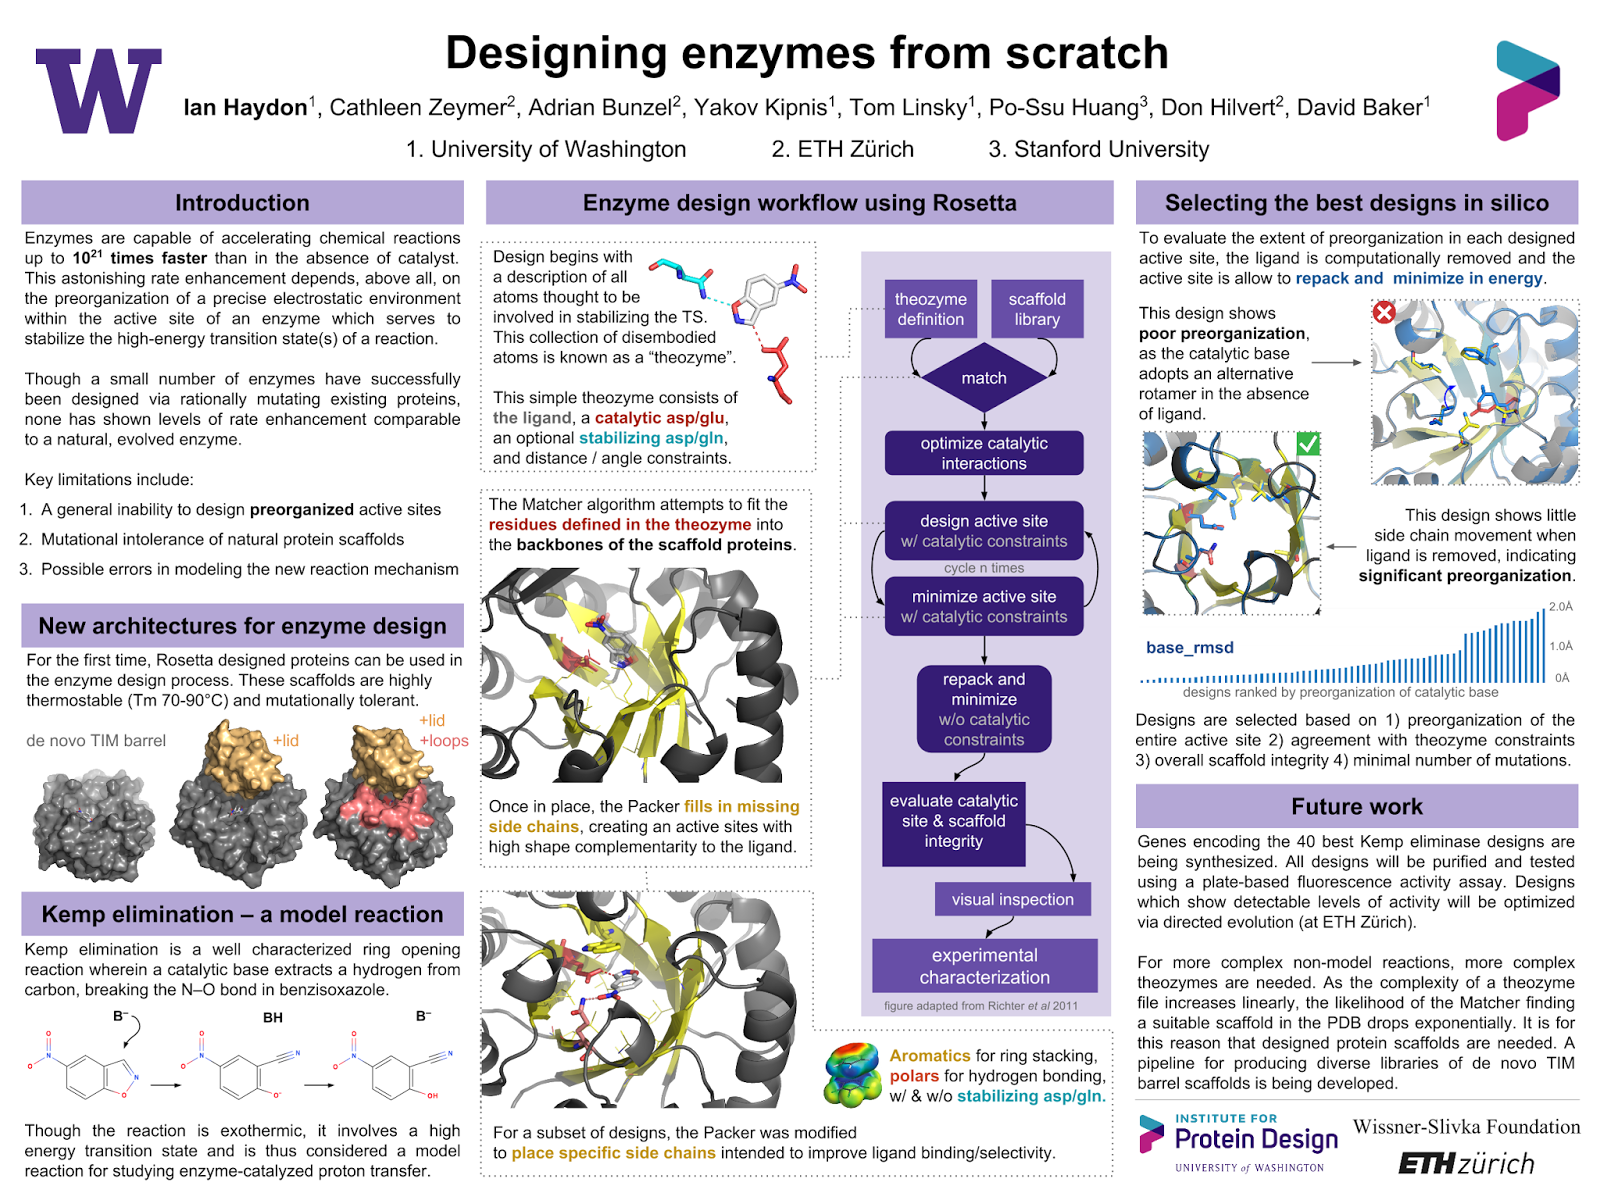 Better posters critique making enzymes todays contribution come from ian haydon who is kind enough to share it with us click to enlarge toneelgroepblik Image collections